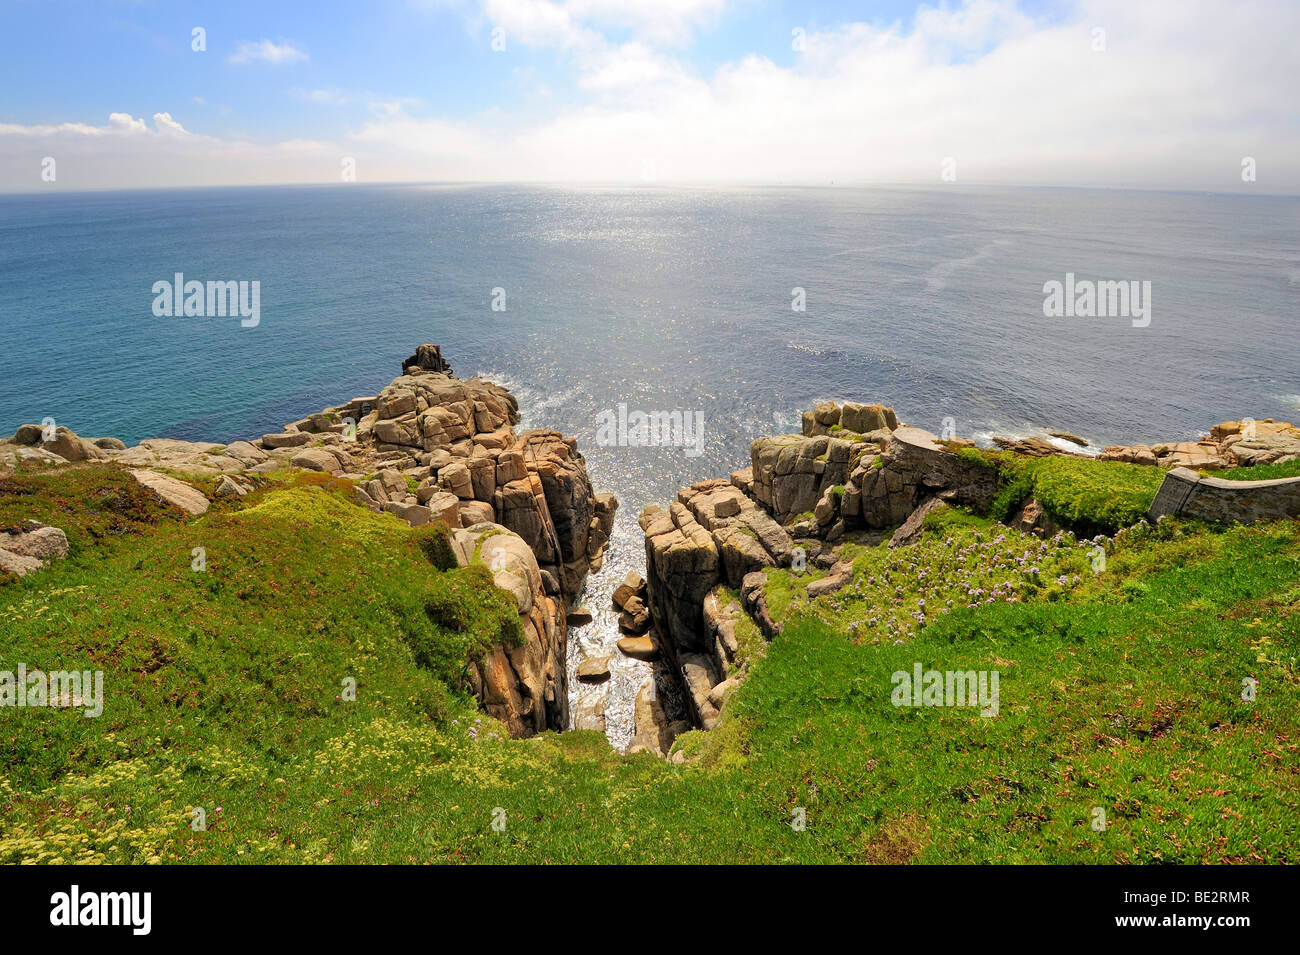 Cliffs at Porthcurno, south coast of Cornwall, England, UK, Europe - Stock Image